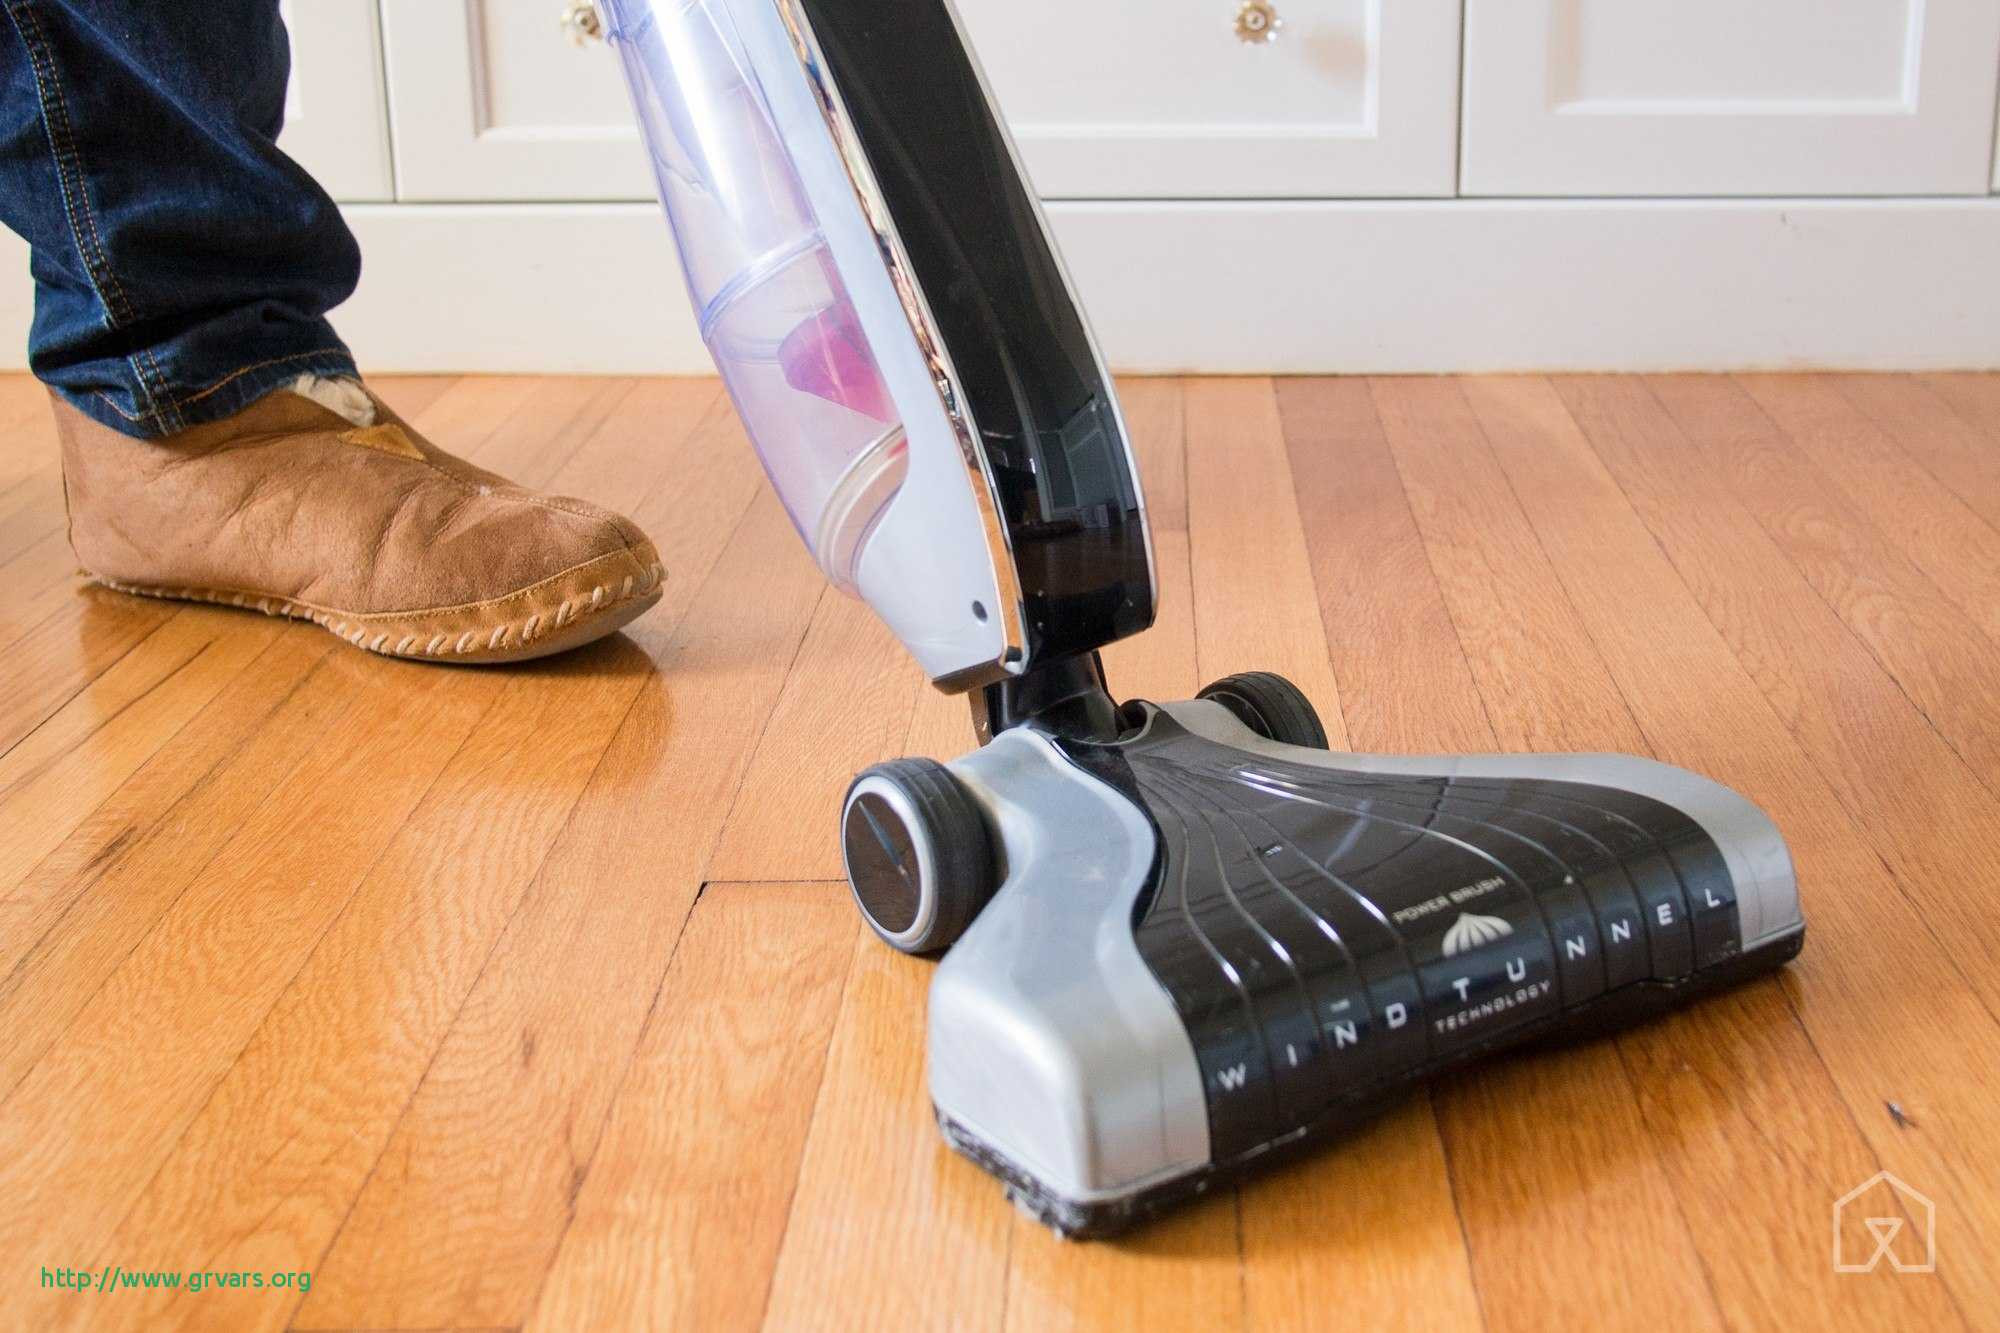 bissell steam mop hardwood floor cleaner of 22 charmant can you use a steam mop on hardwood floors ideas blog intended for can you use a steam mop on hardwood floors a‰lagant steam cleaners for hardwood floors